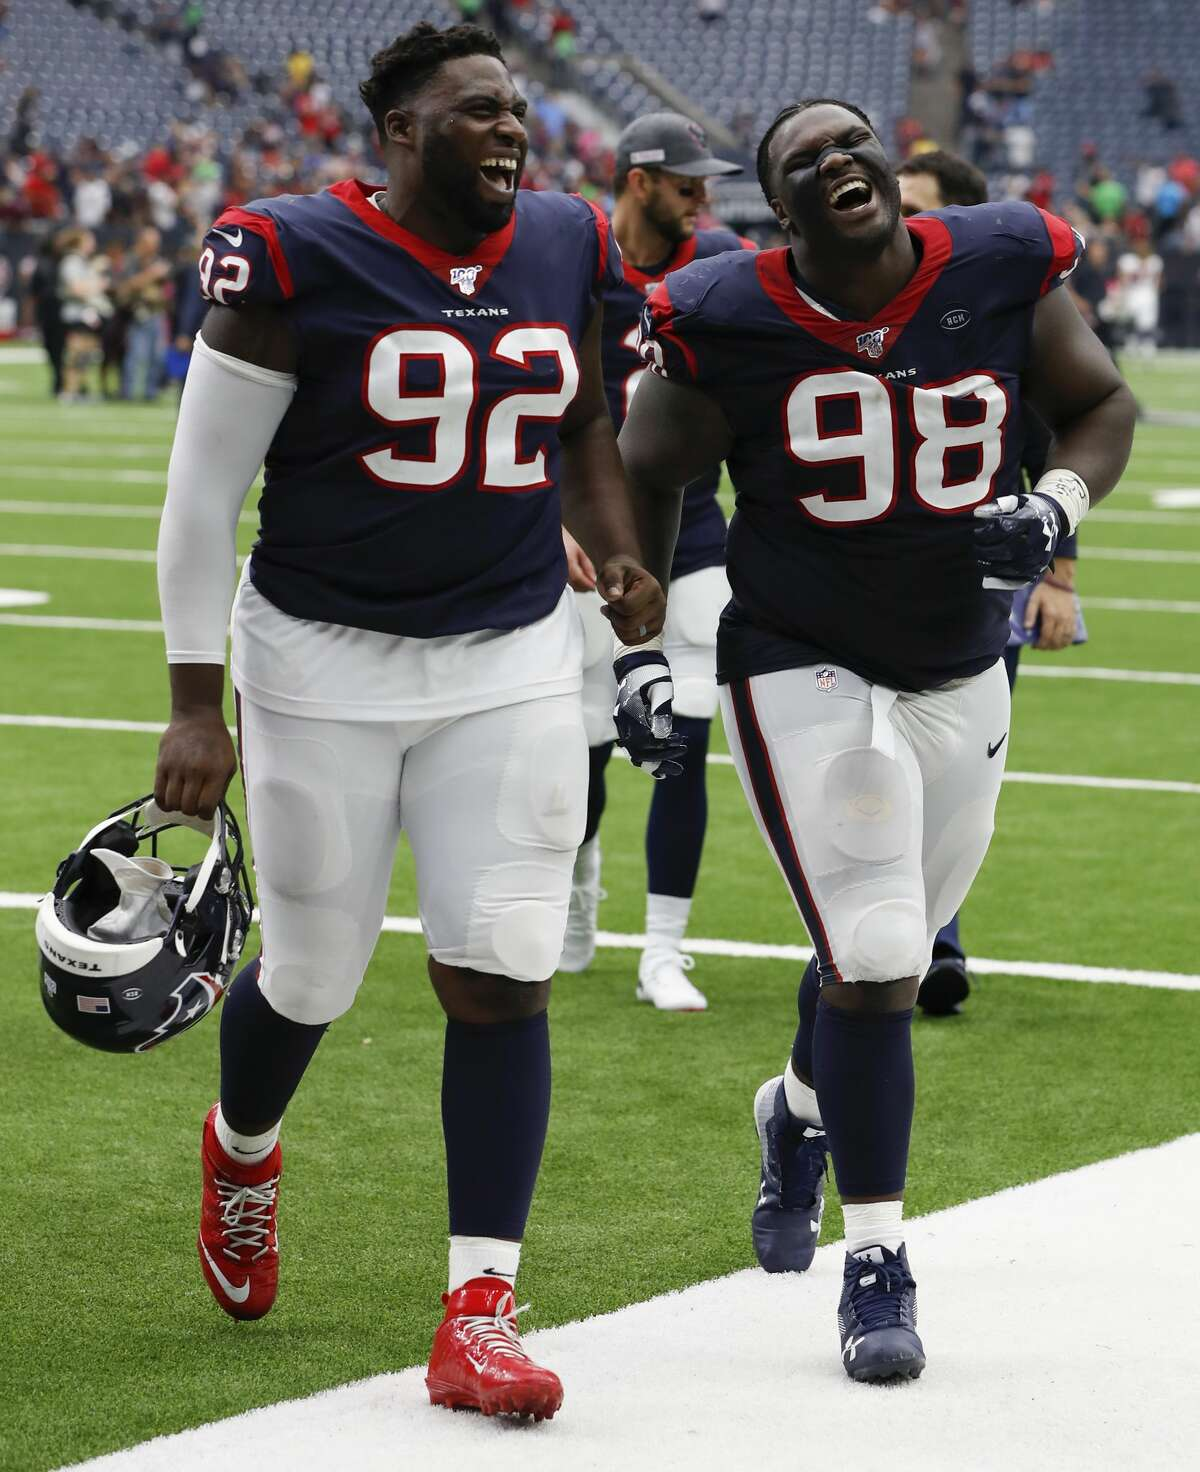 Houston Texans nose tackle Brandon Dunn (92) and defensive end D.J. Reader (98) laugh as they leave the field following the Texans' 53-32 win over the Atlanta Falcons in NFL football game at NRG Stadium on Sunday, monthnameap} 6, 2019, in Houston.